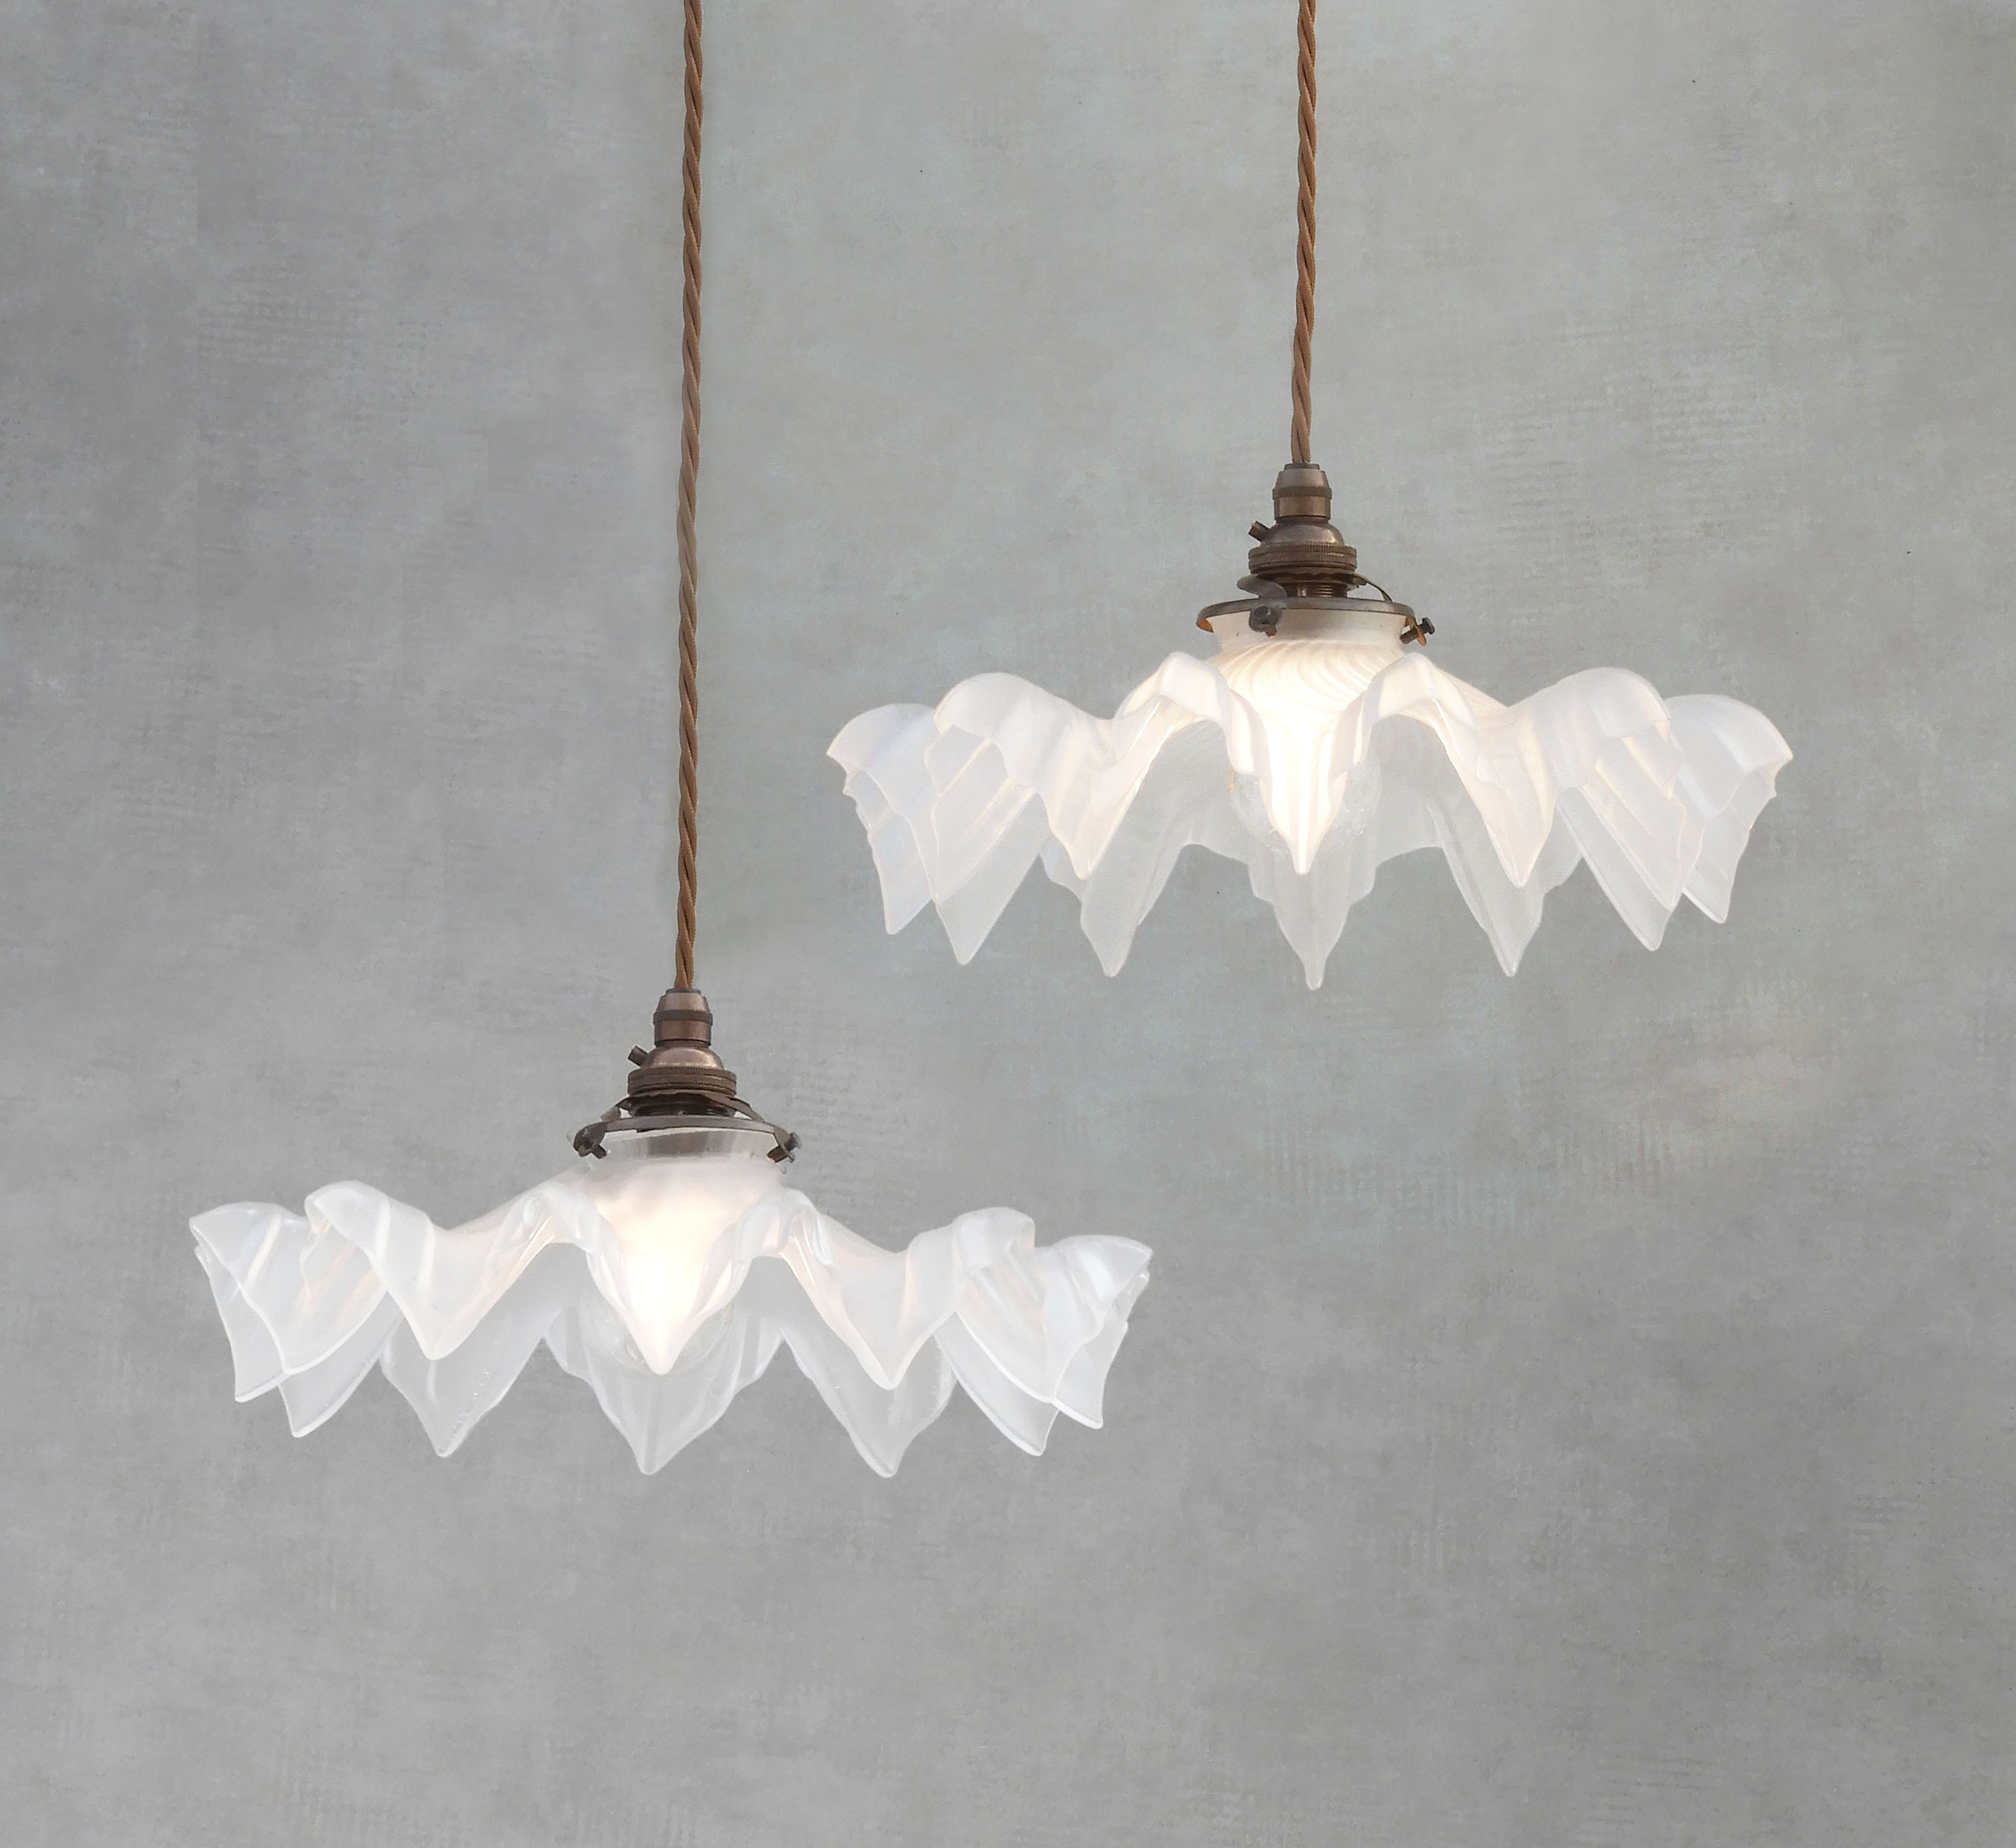 Vintage Pendant Lights Frosted Antique French Glass Lamp Shades Art Deco Circa 1930 Matched Pair